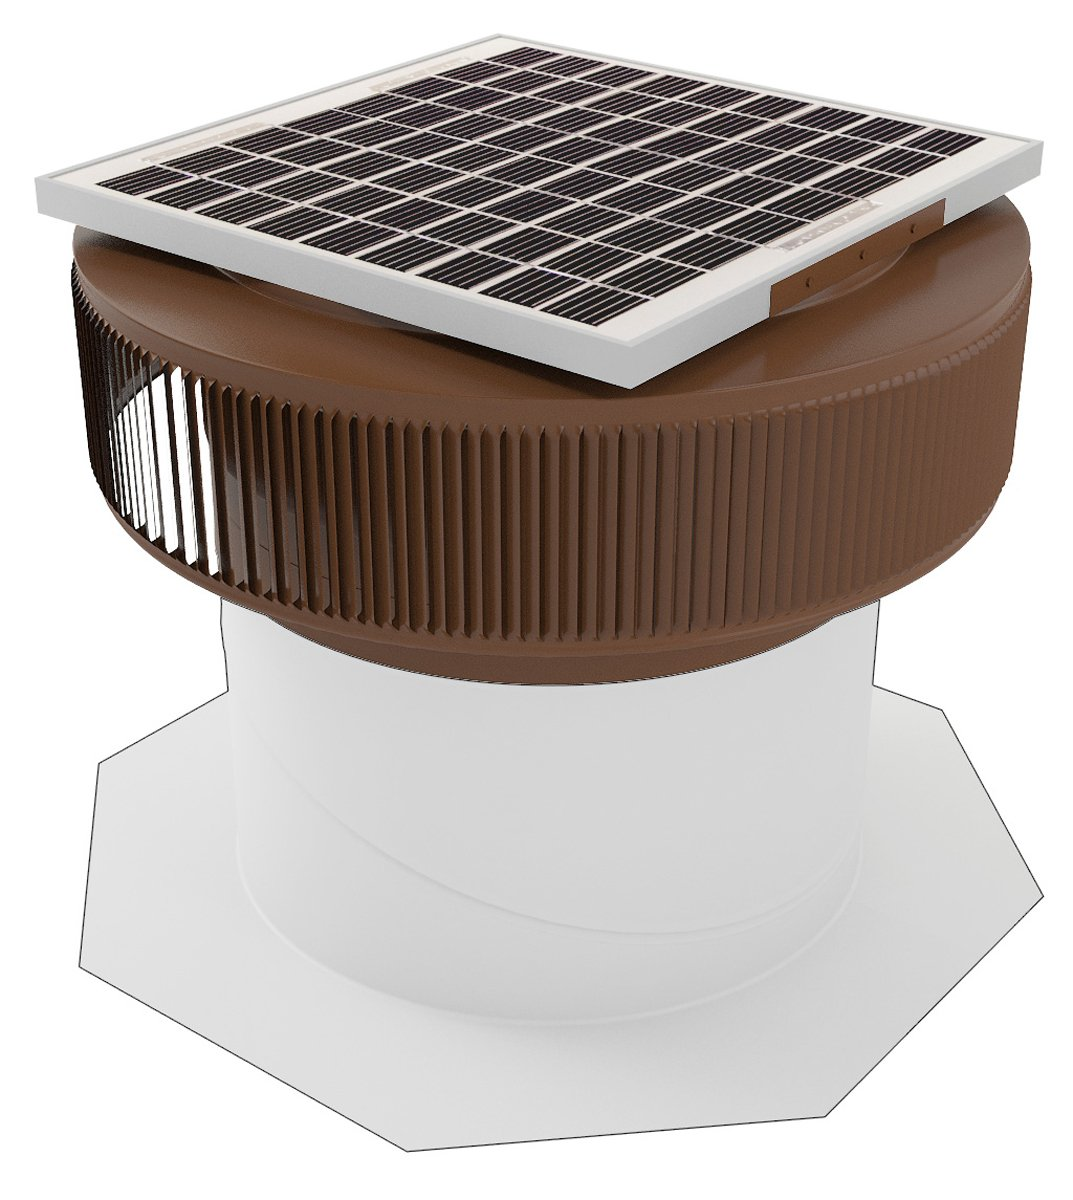 Aura 14 in. Aluminum Round 15 Watt Solar Powered Roof Exhaust Fan in Brown